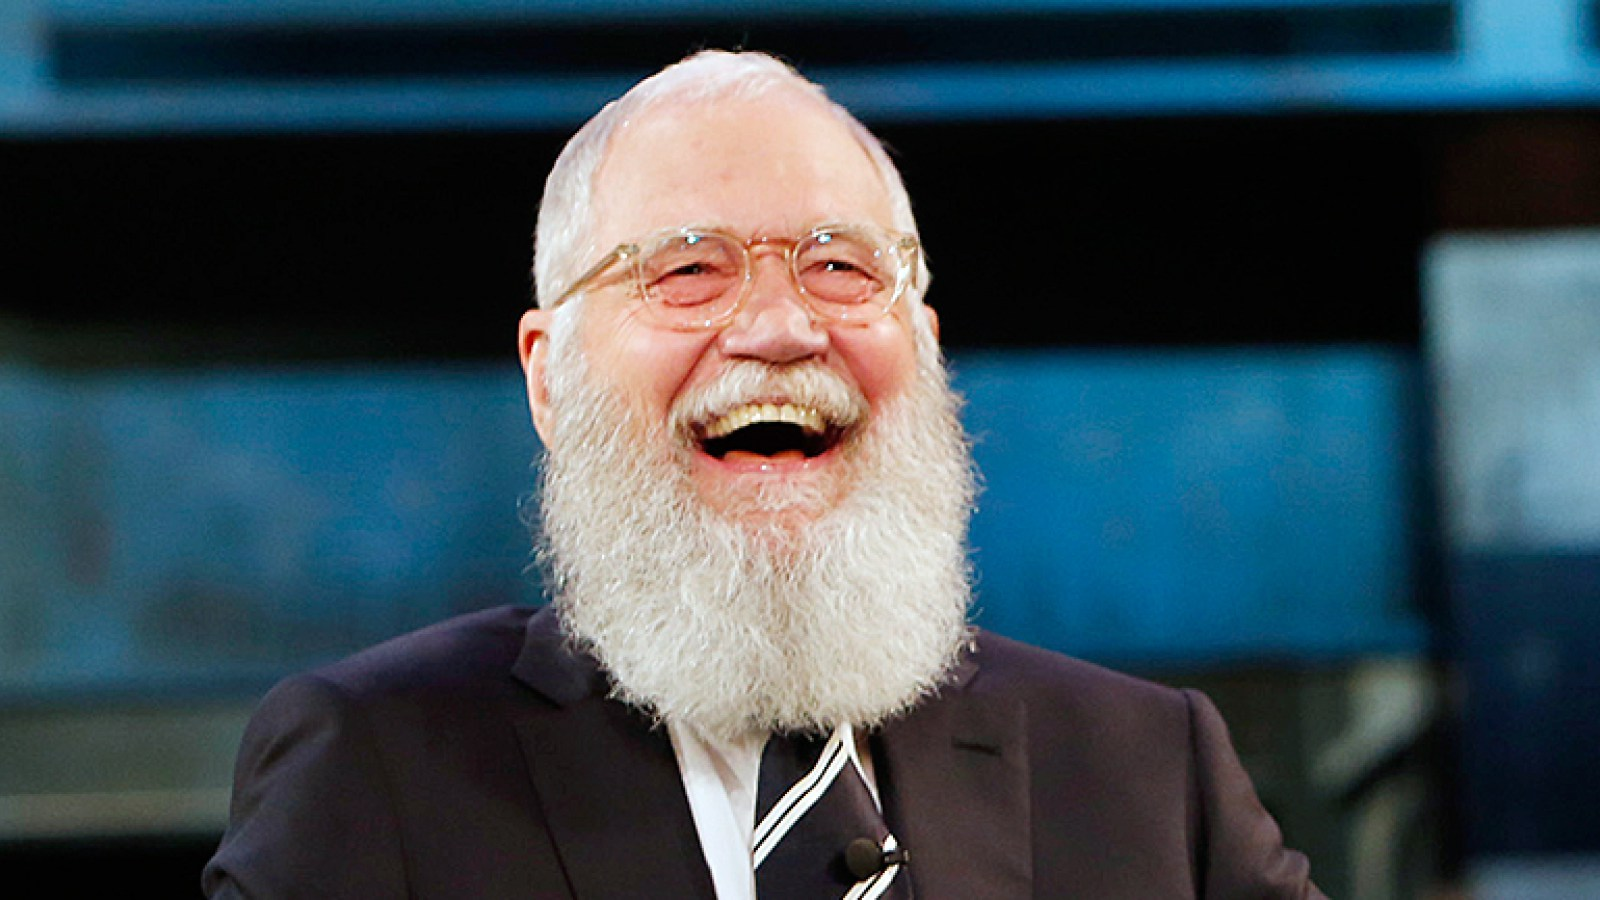 Barack Obama set to star in David Letterman's TV comeback